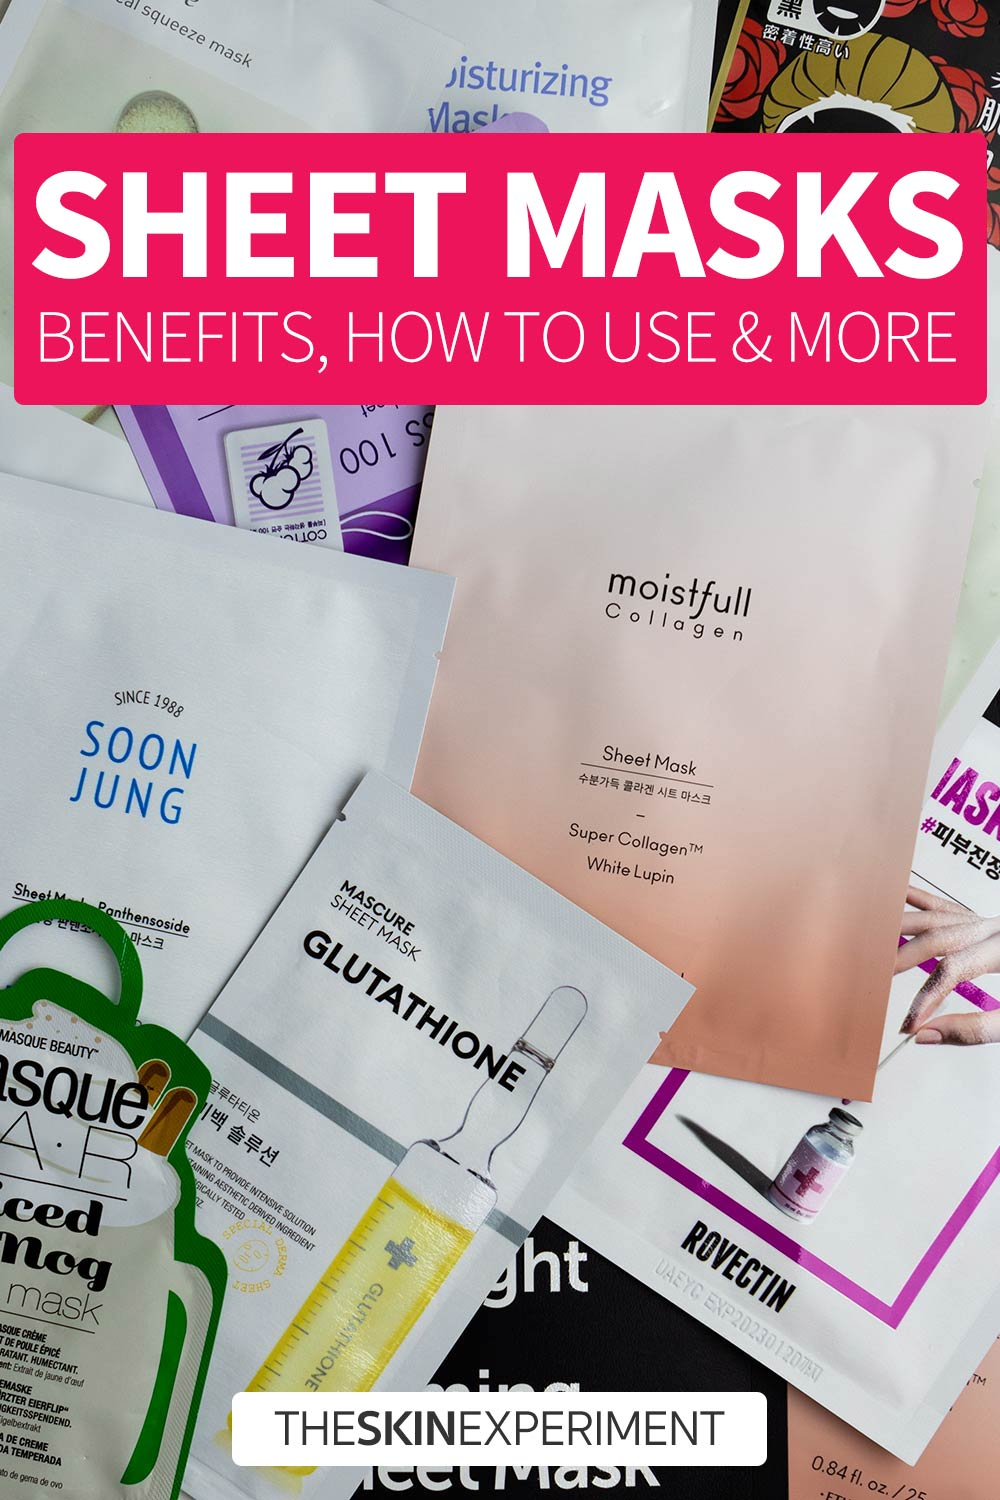 Sheet Mask Benefits, Uses and More